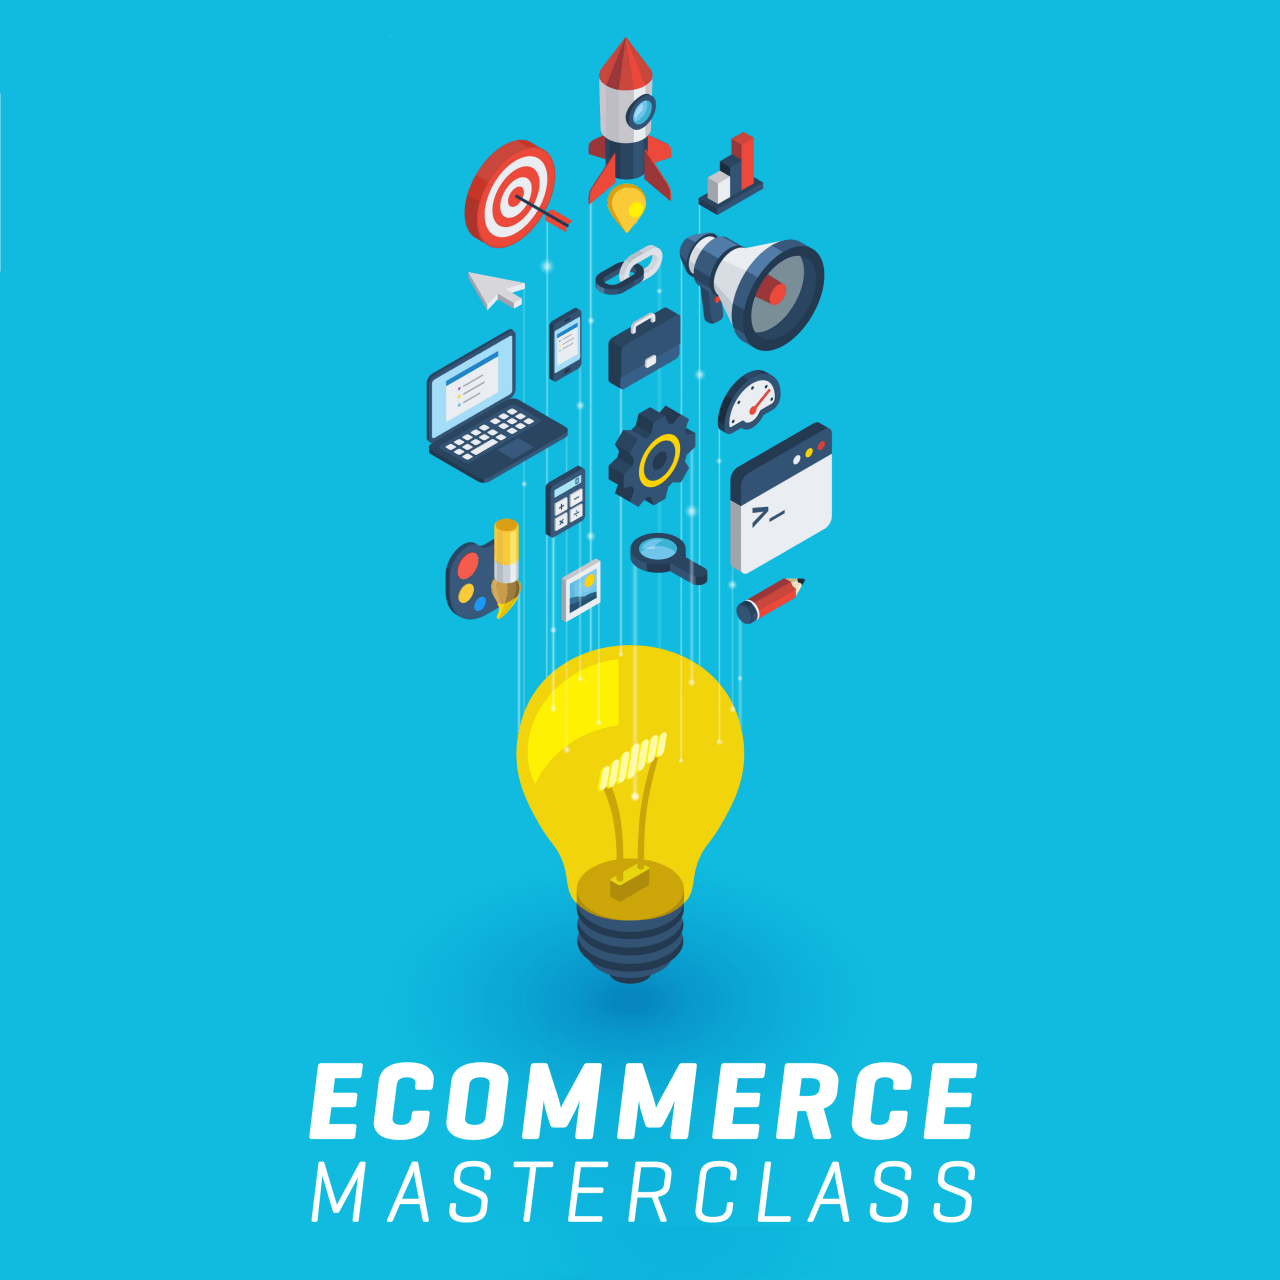 从零开始建立有利可图的网上商店(eCommerce Masterclass - How to Build an Online Business)